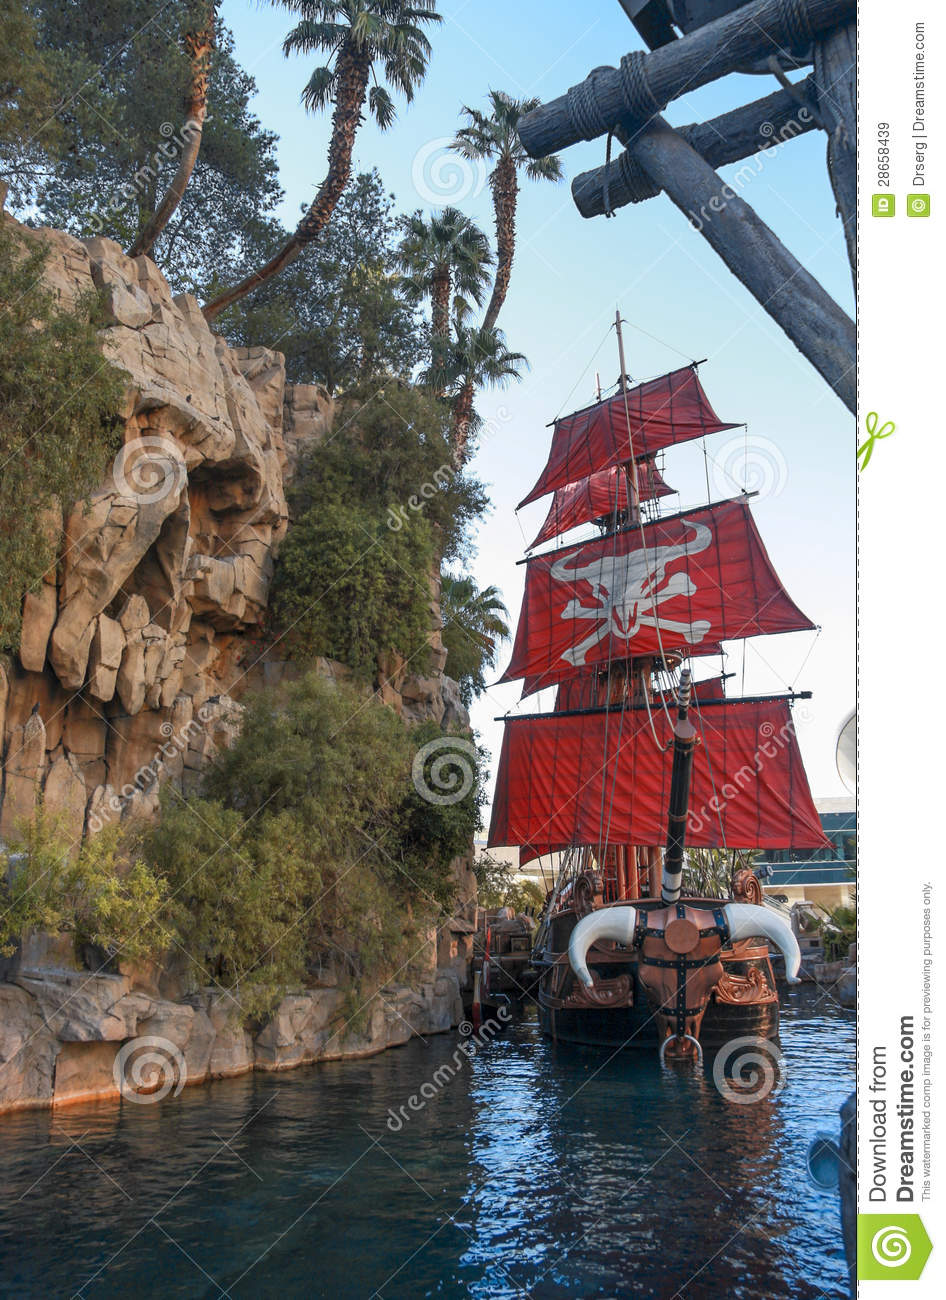 LAS VEGAS, NEVADA - MAY 5, 2009: Pirate ship at pond near Treasure Island  hotel in Las Vegas on May 5, 2009. This Caribbean themed resort has an  hotel with ...